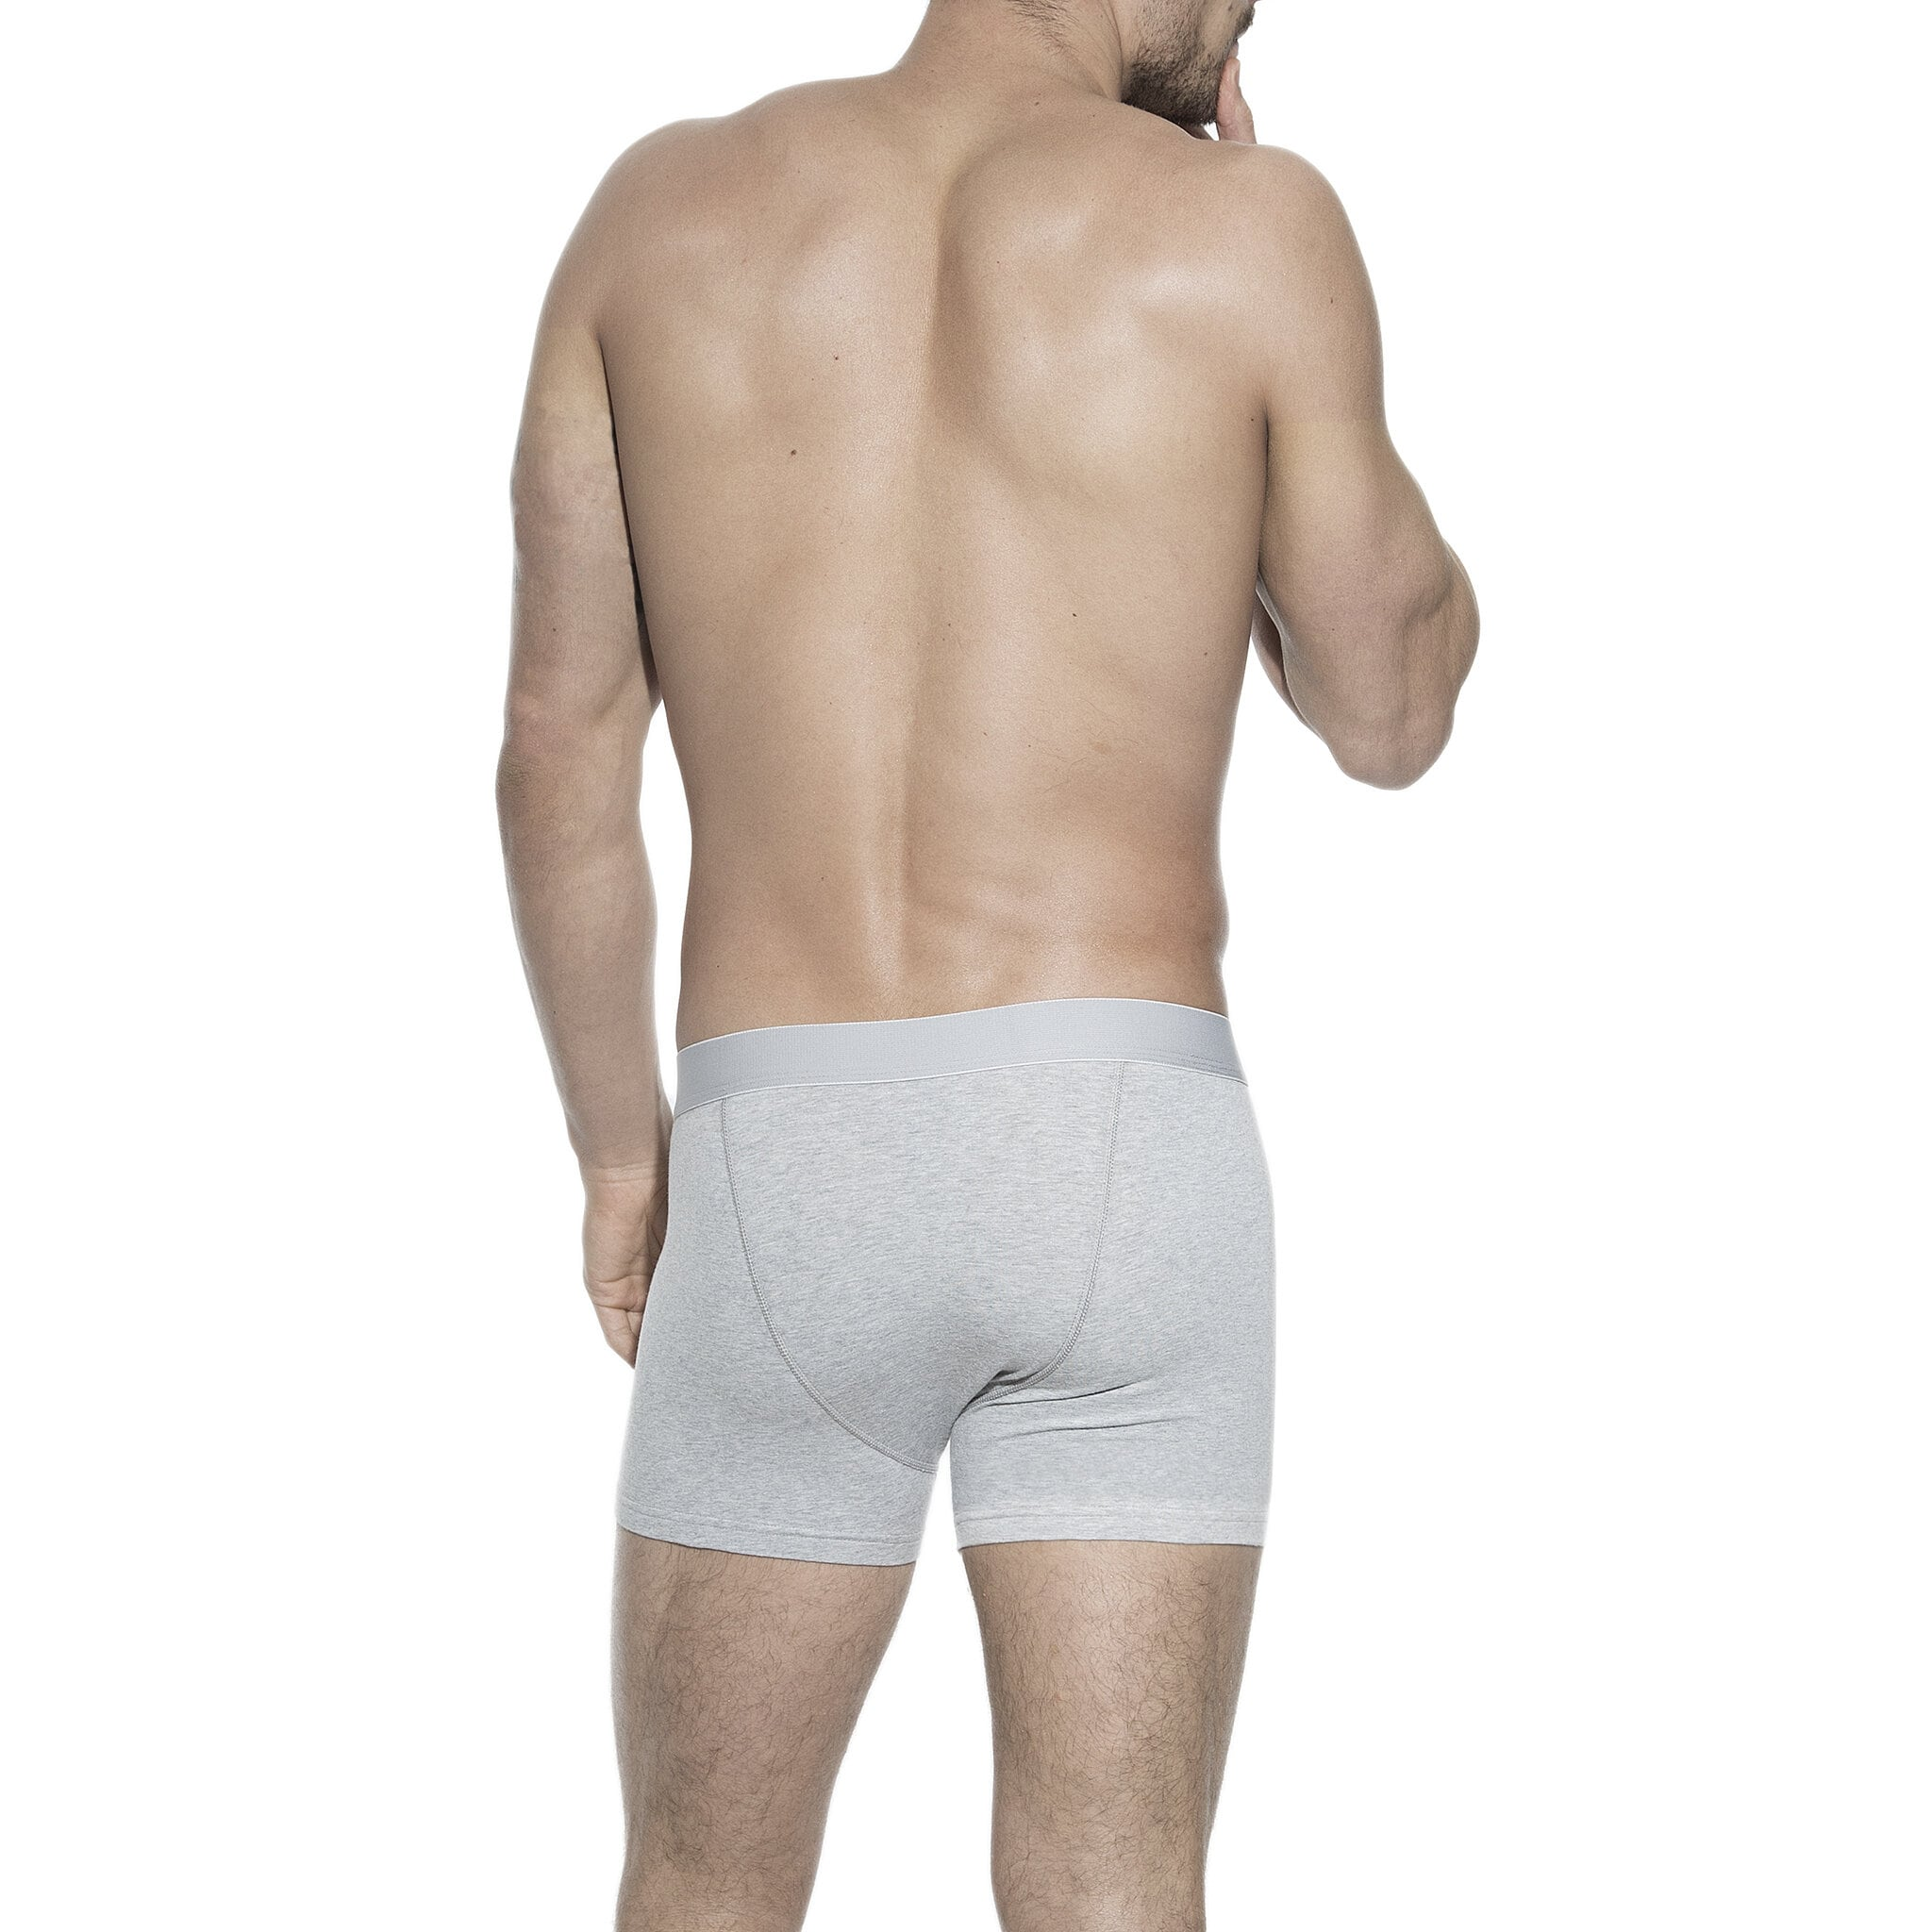 202203_Man_Boxer-Brief_grey-melange_3